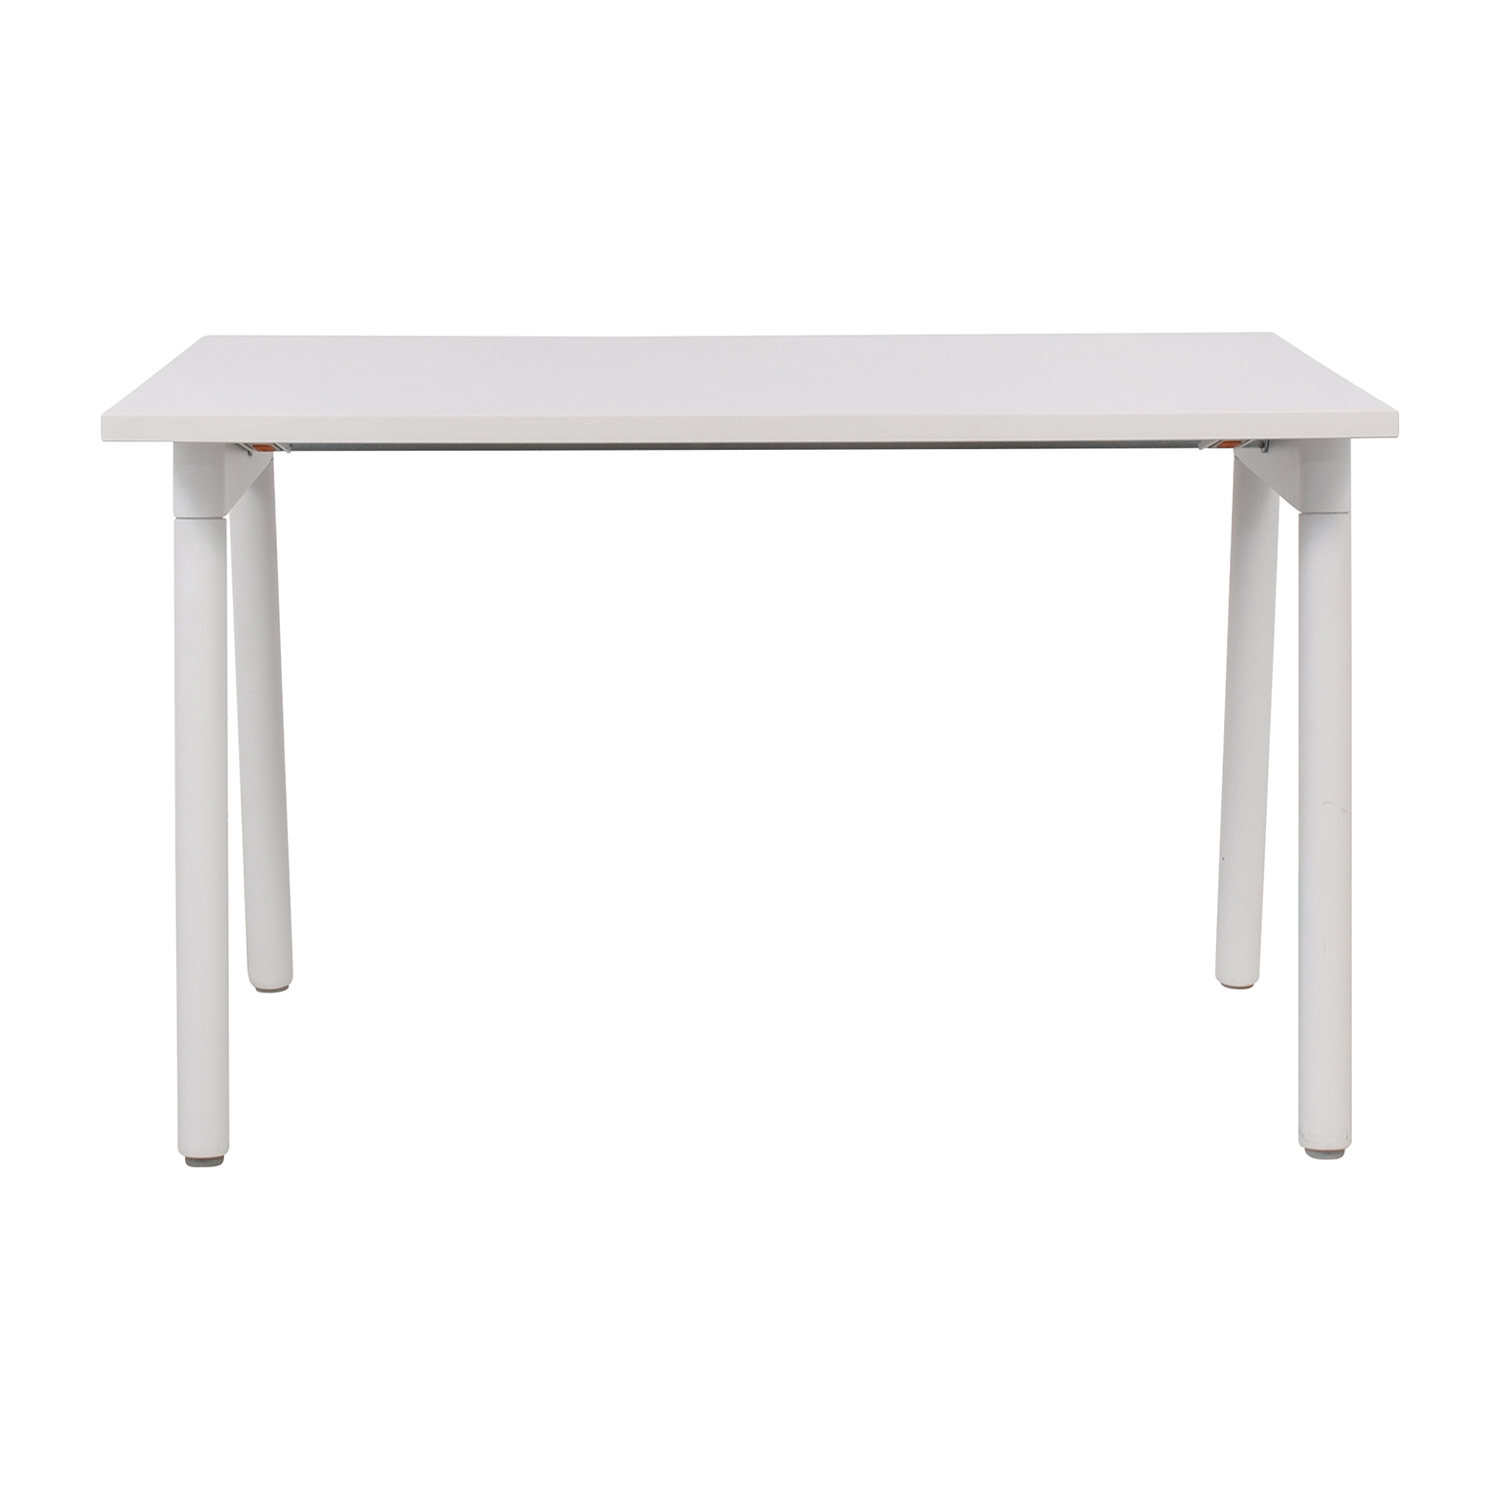 Poppin Poppin Series A White Single Desk price